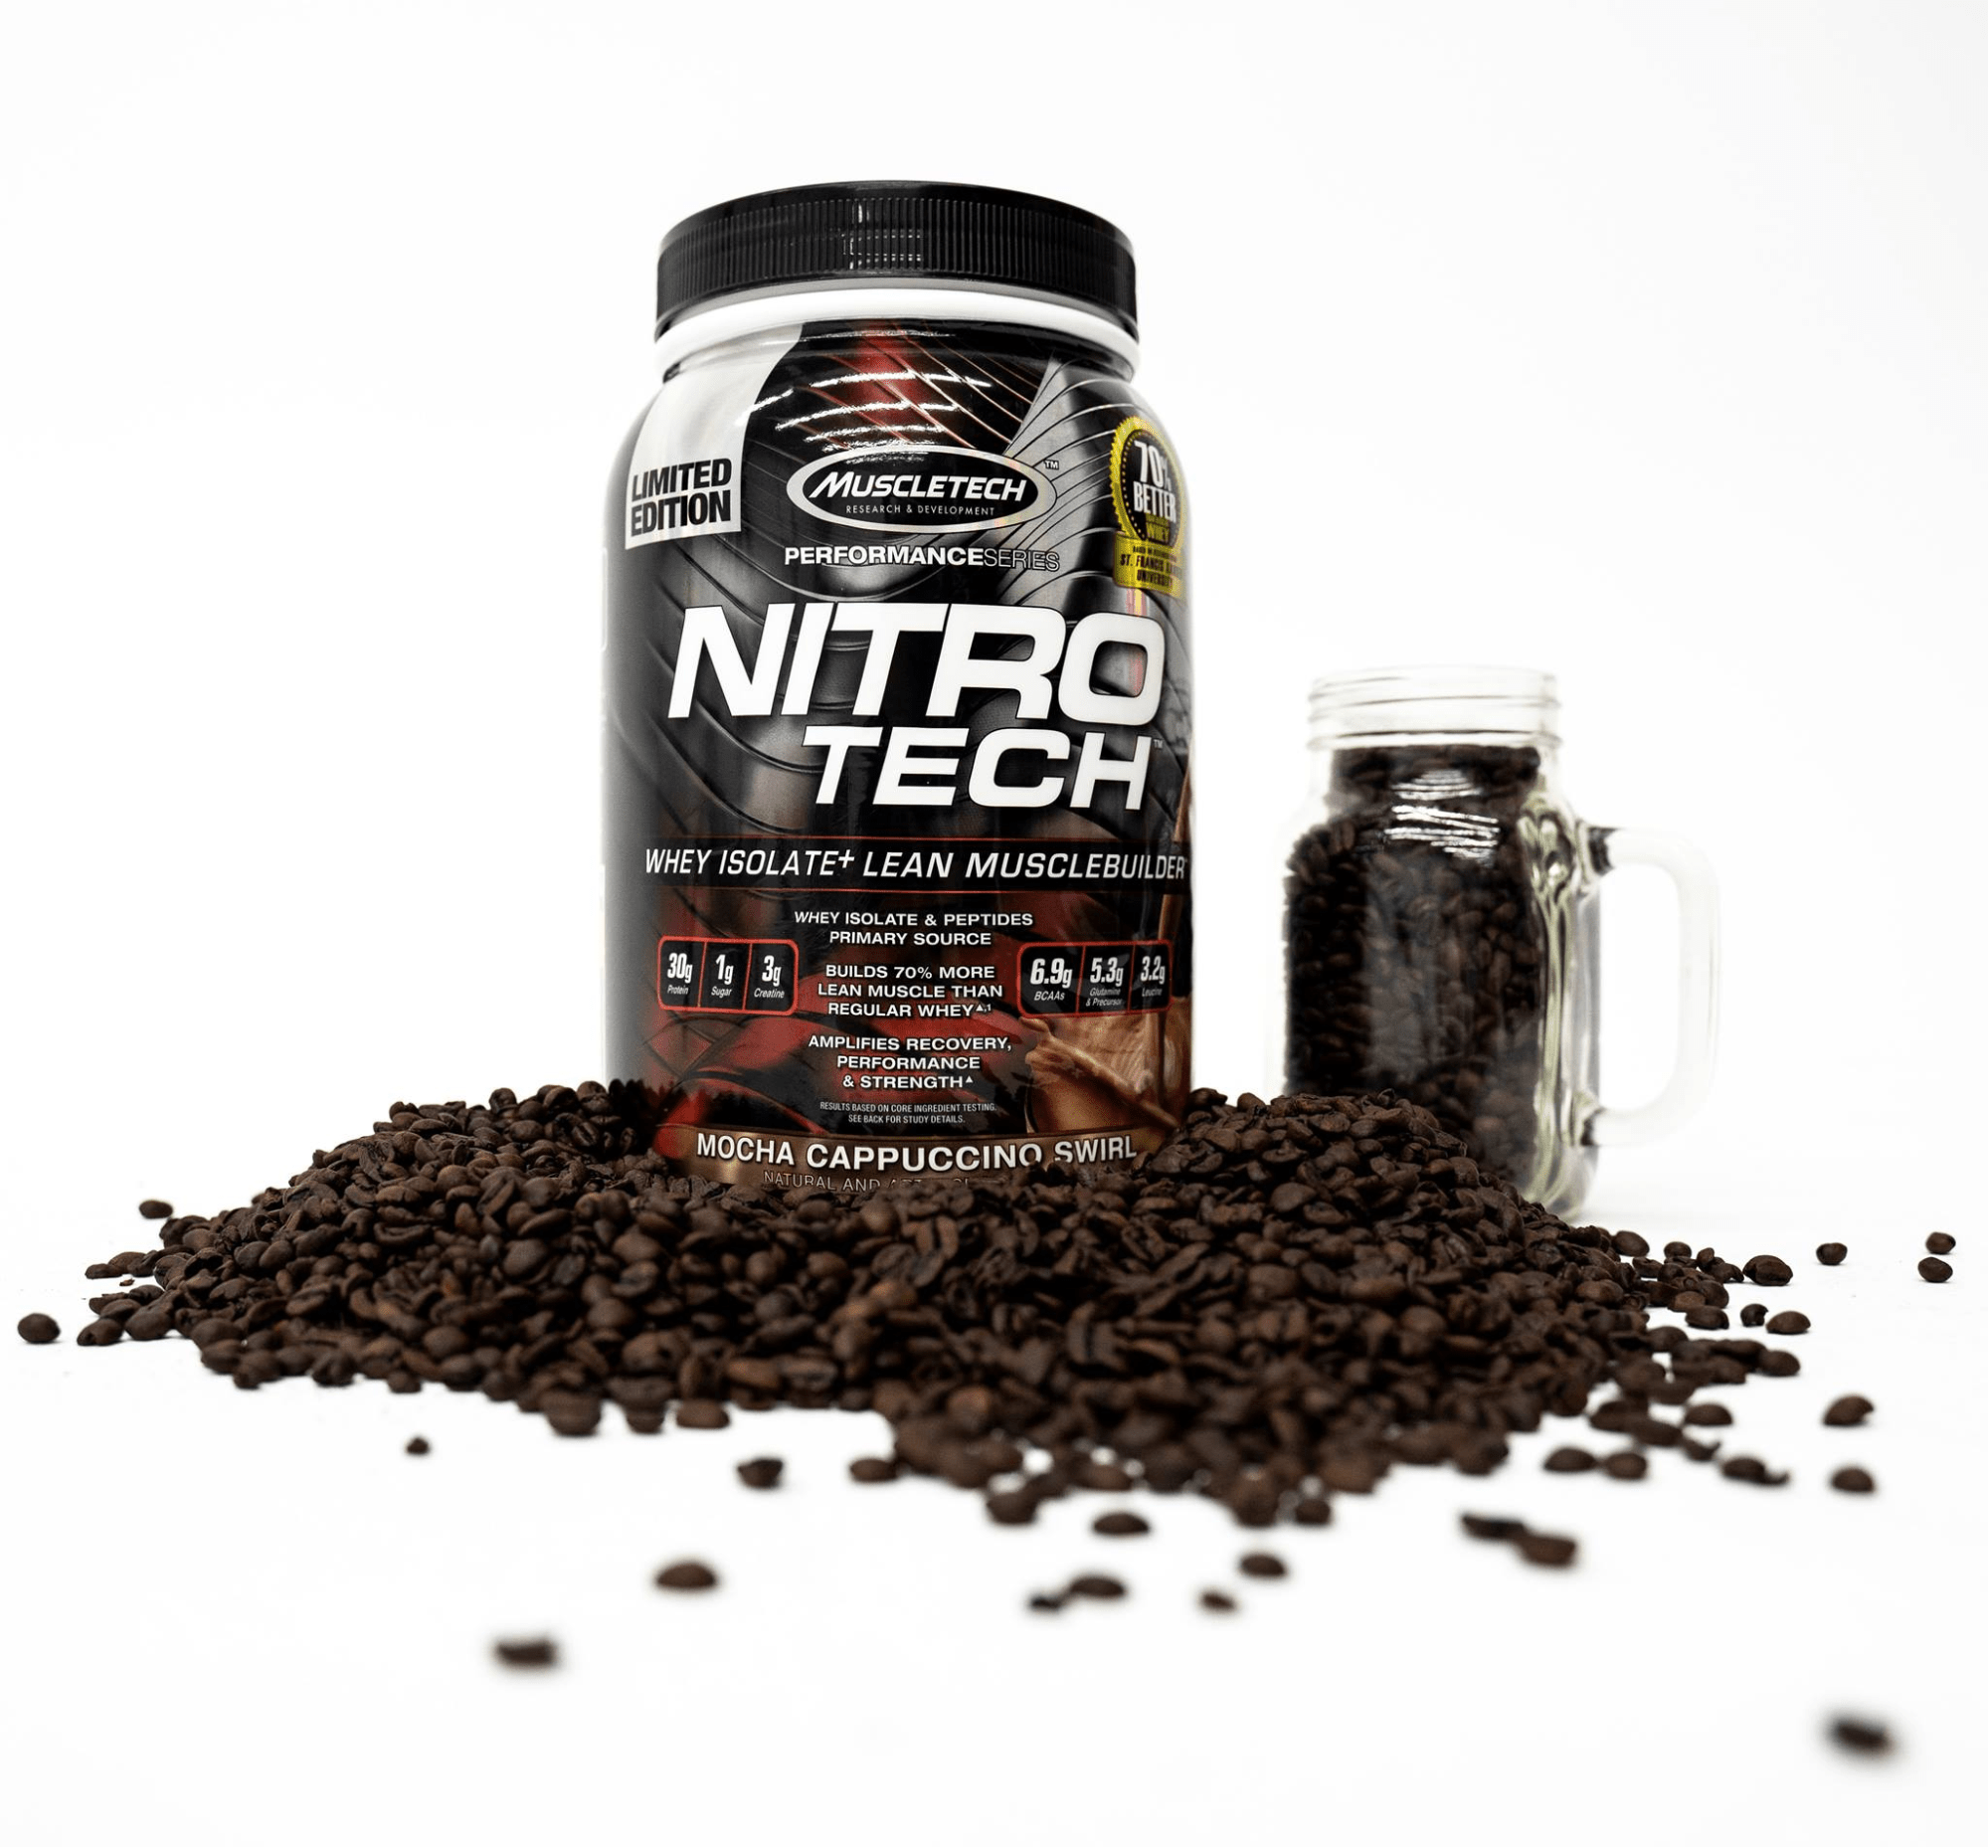 muscletech nitro tech has 30g of protein per scoop